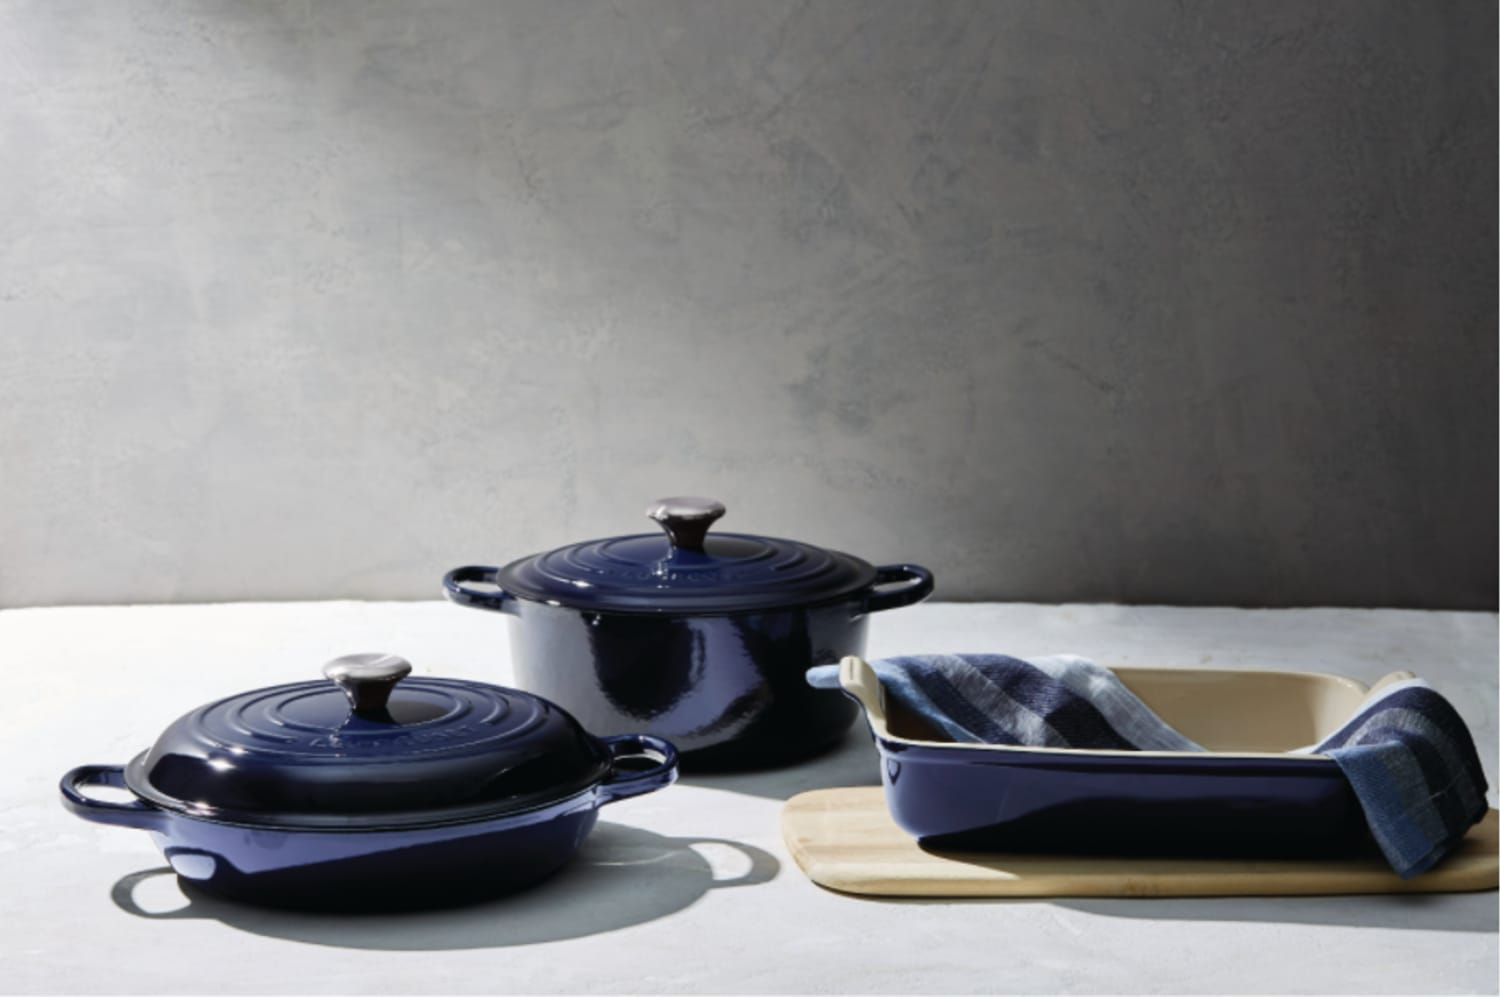 Le Creuset Just Launched a Brand New Color That's Out of this World (No, Really!)